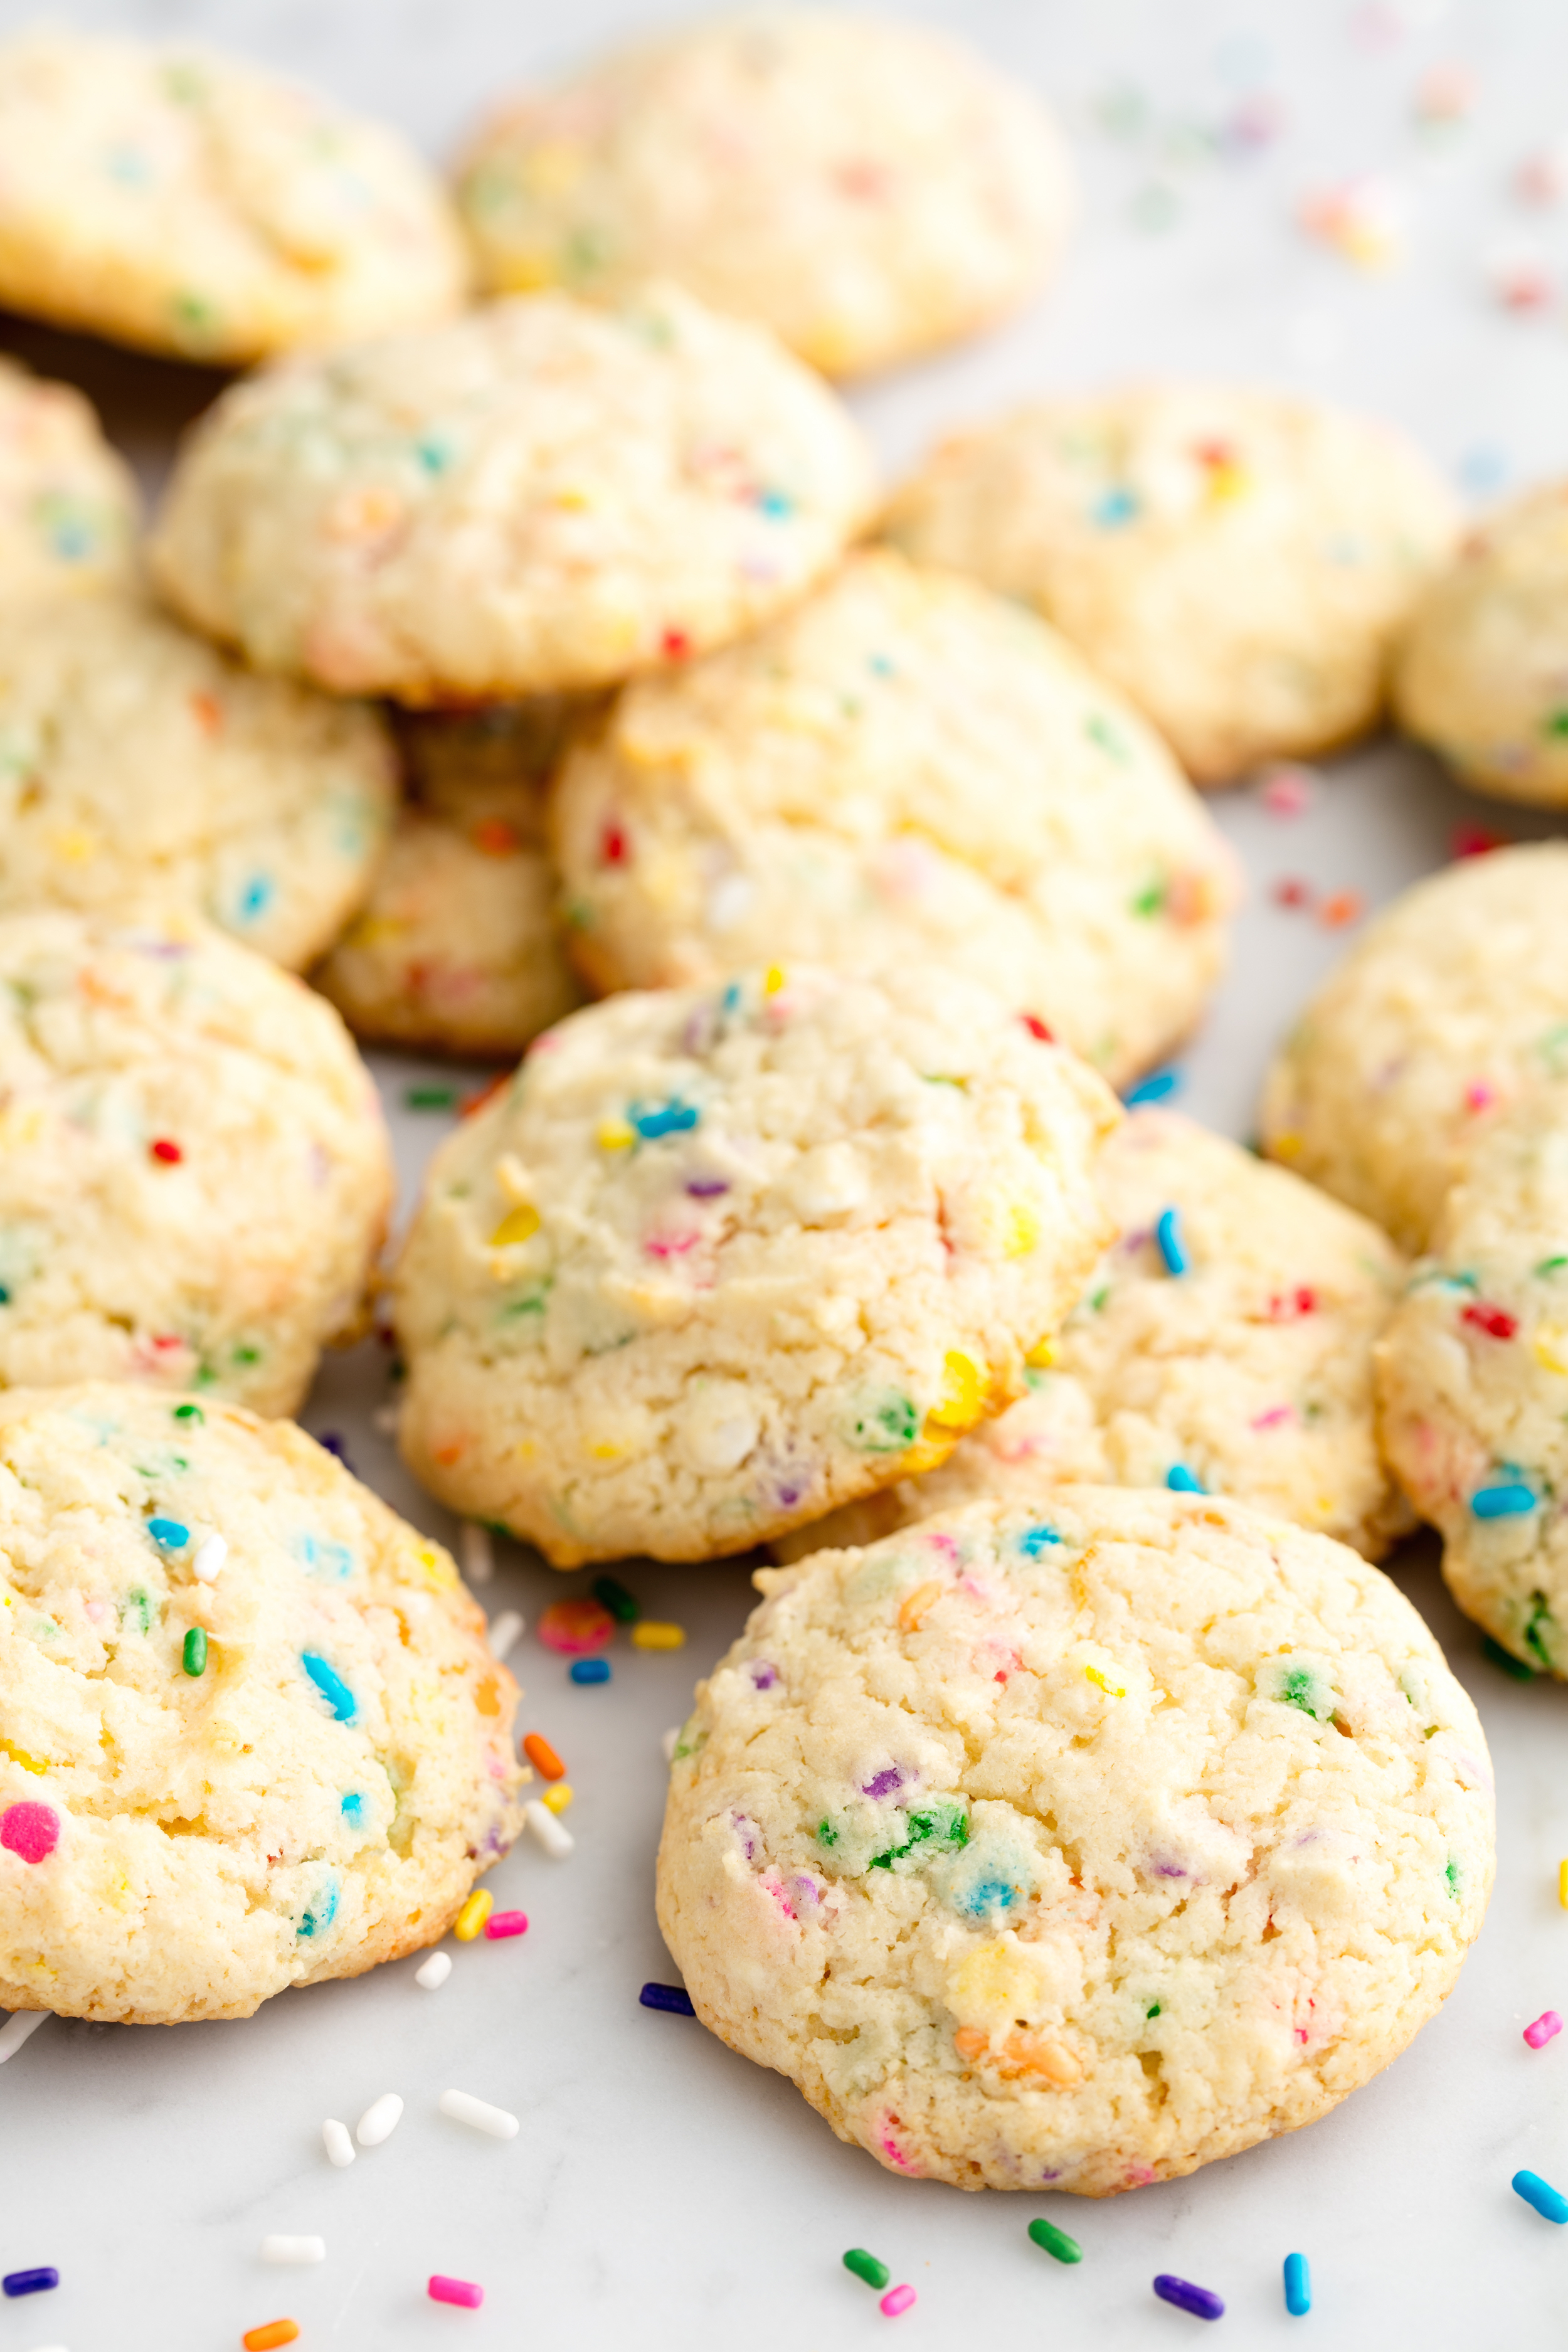 How To Make Cookies Using Cake Mix